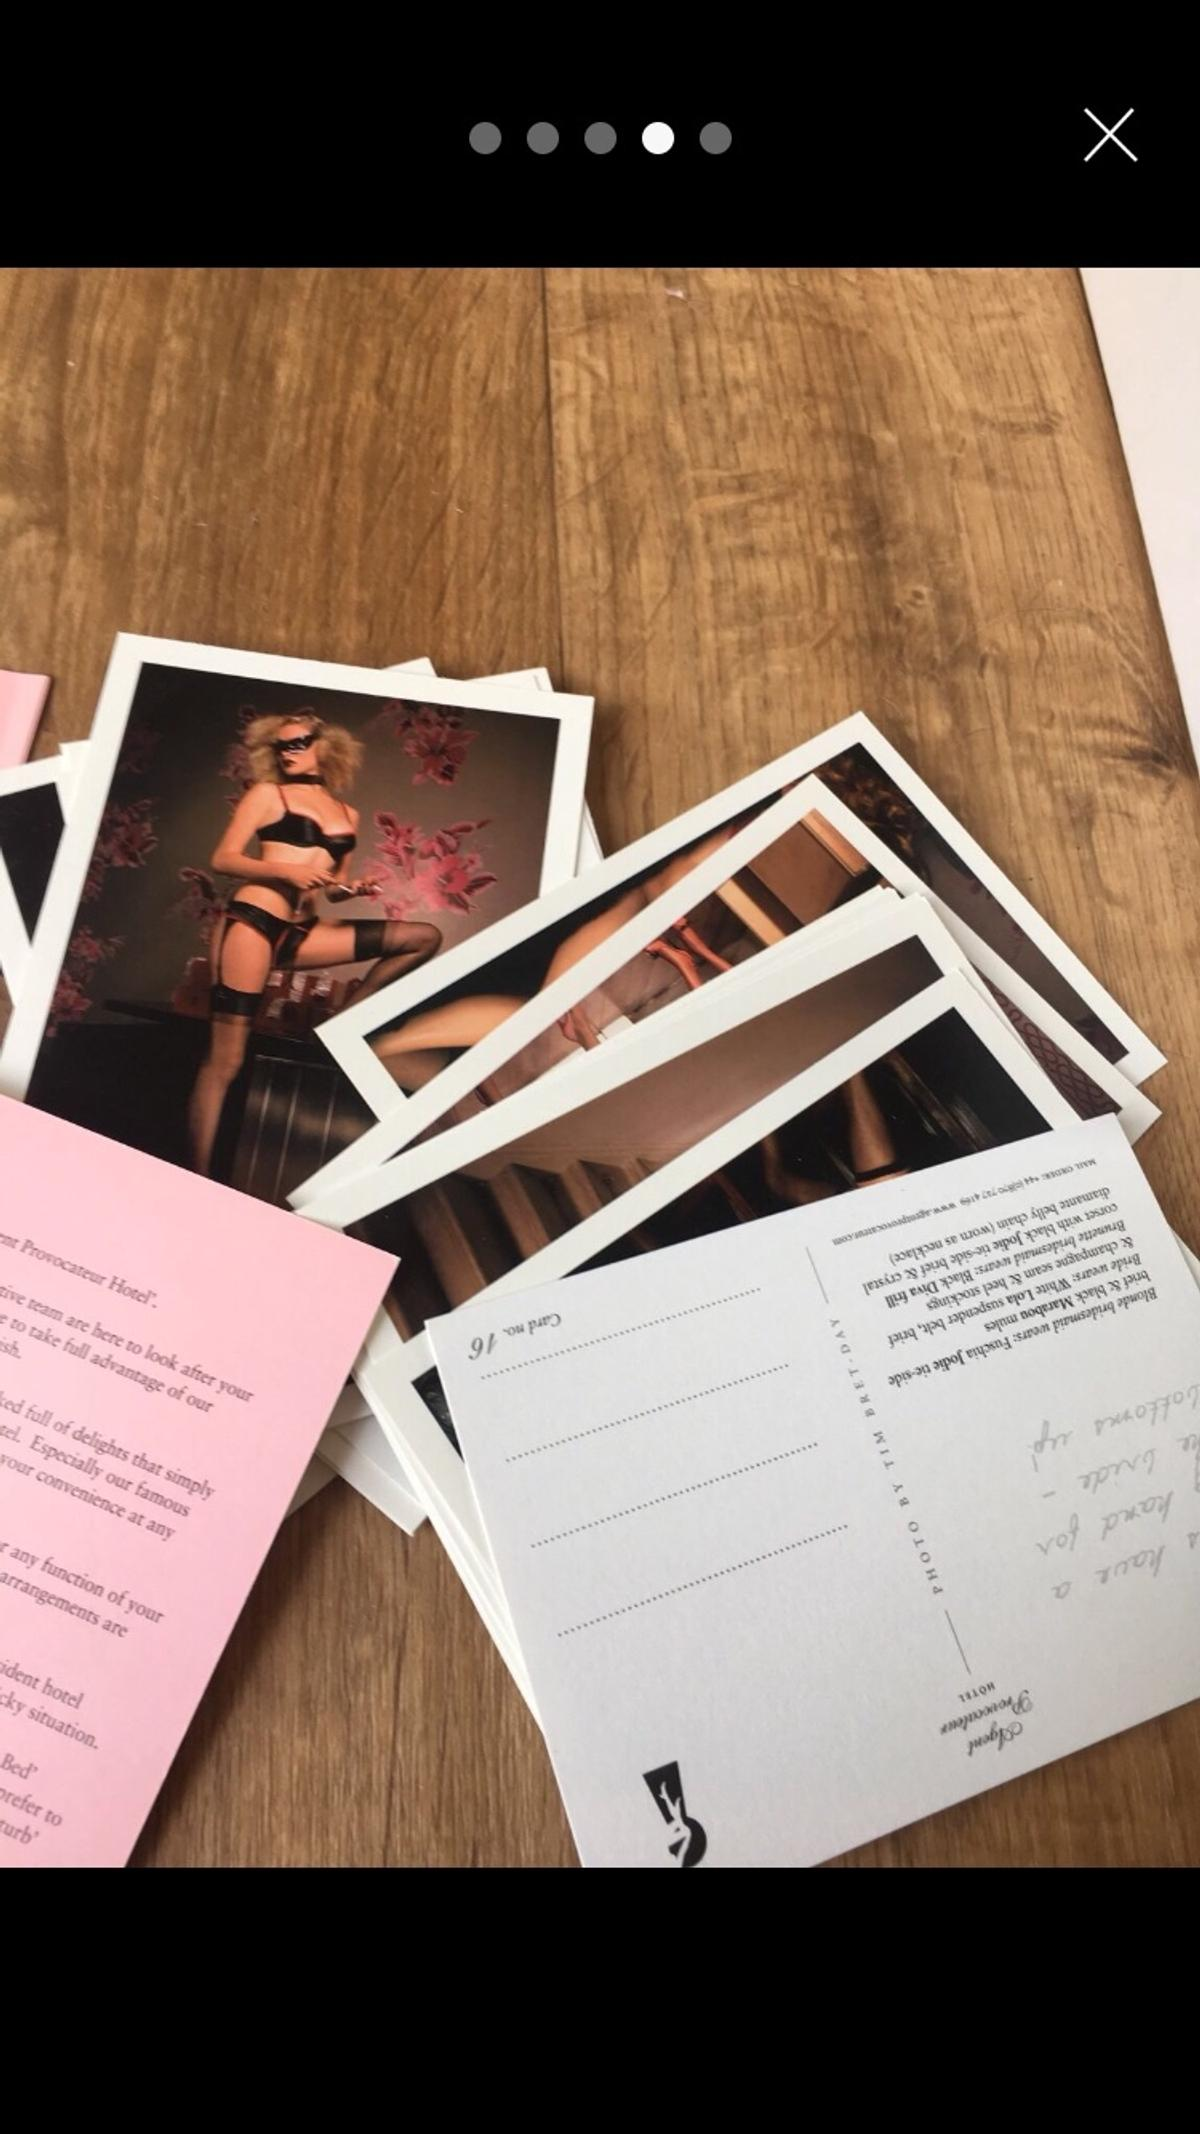 Agent provocateur hotel welcome pack in SG13 Hertfordshire